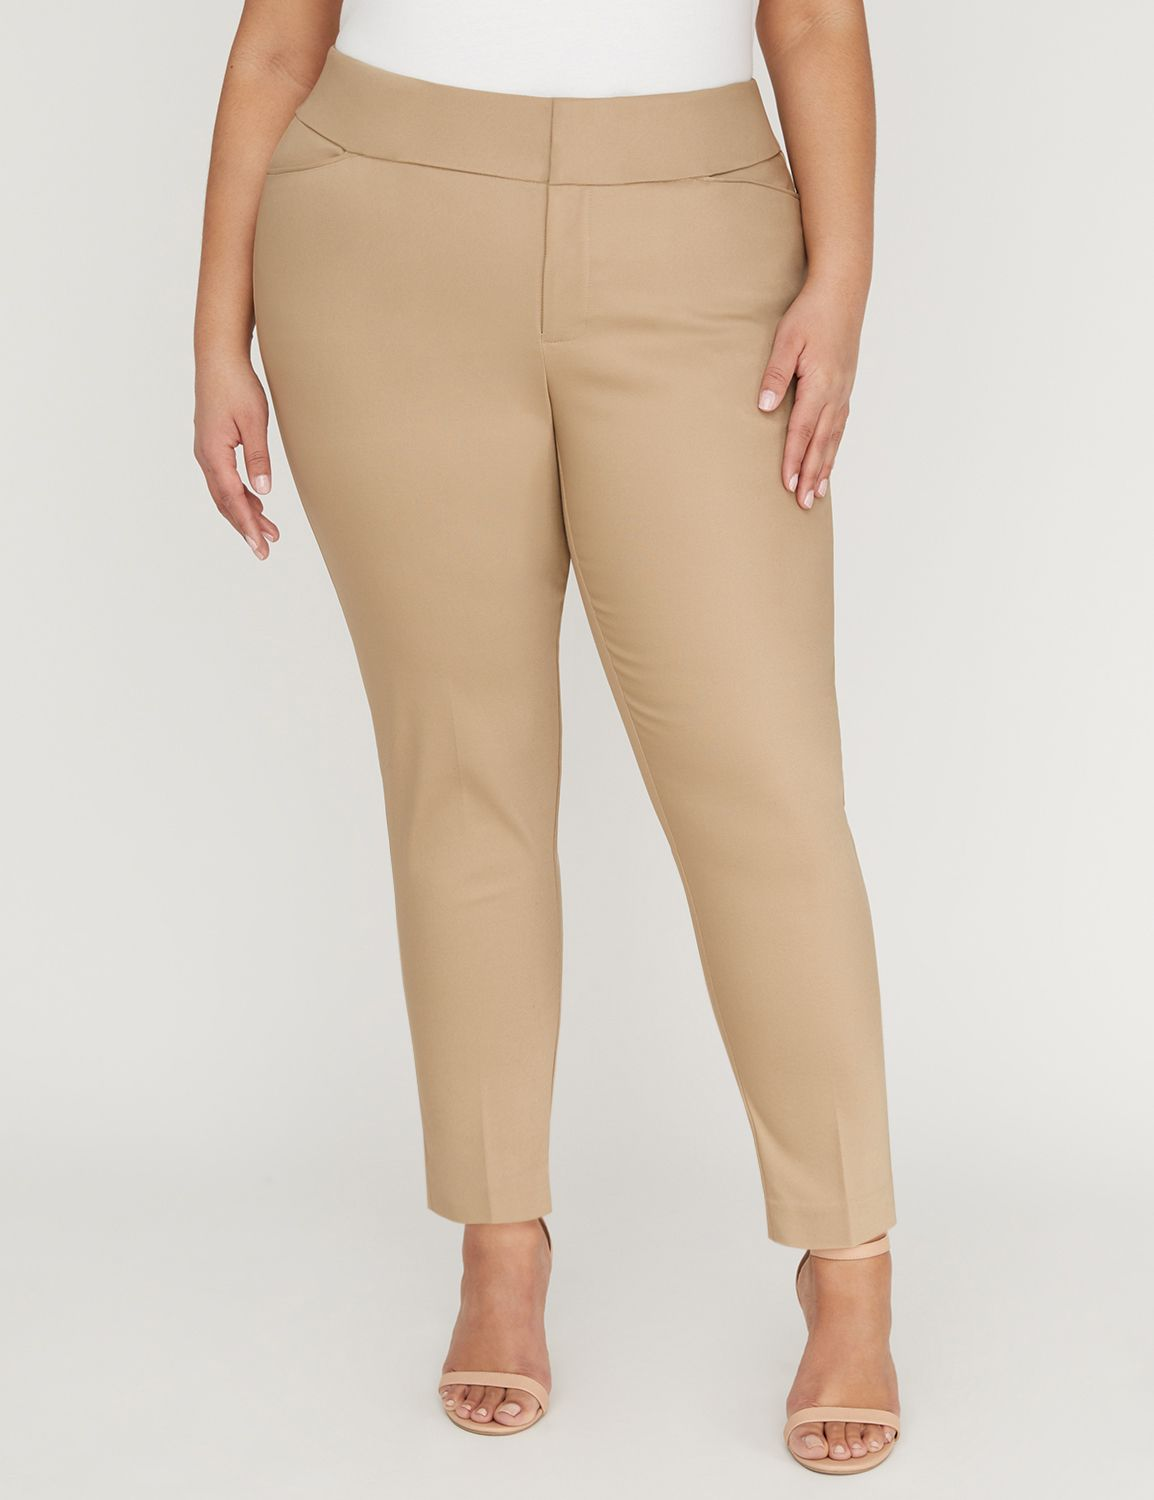 Updated Modern Stretch Ankle Pant 1087775 MODERN STRETCH WIDE WAISTBA MP-300097596